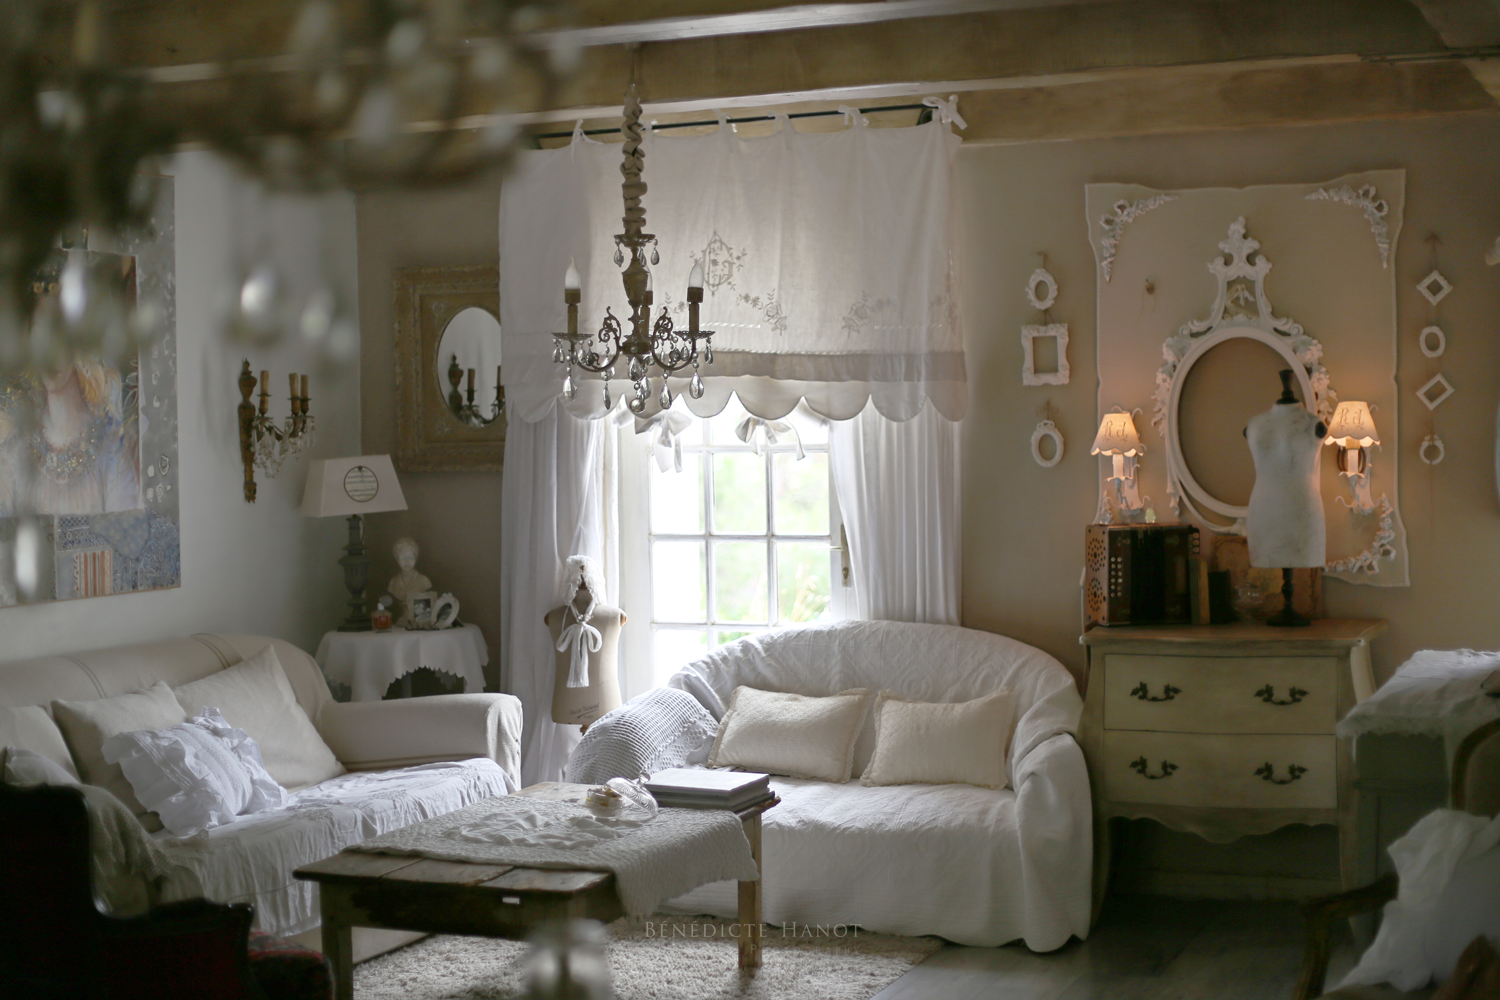 garten moy ambiance romantique de chambre de style shabby chic. Black Bedroom Furniture Sets. Home Design Ideas